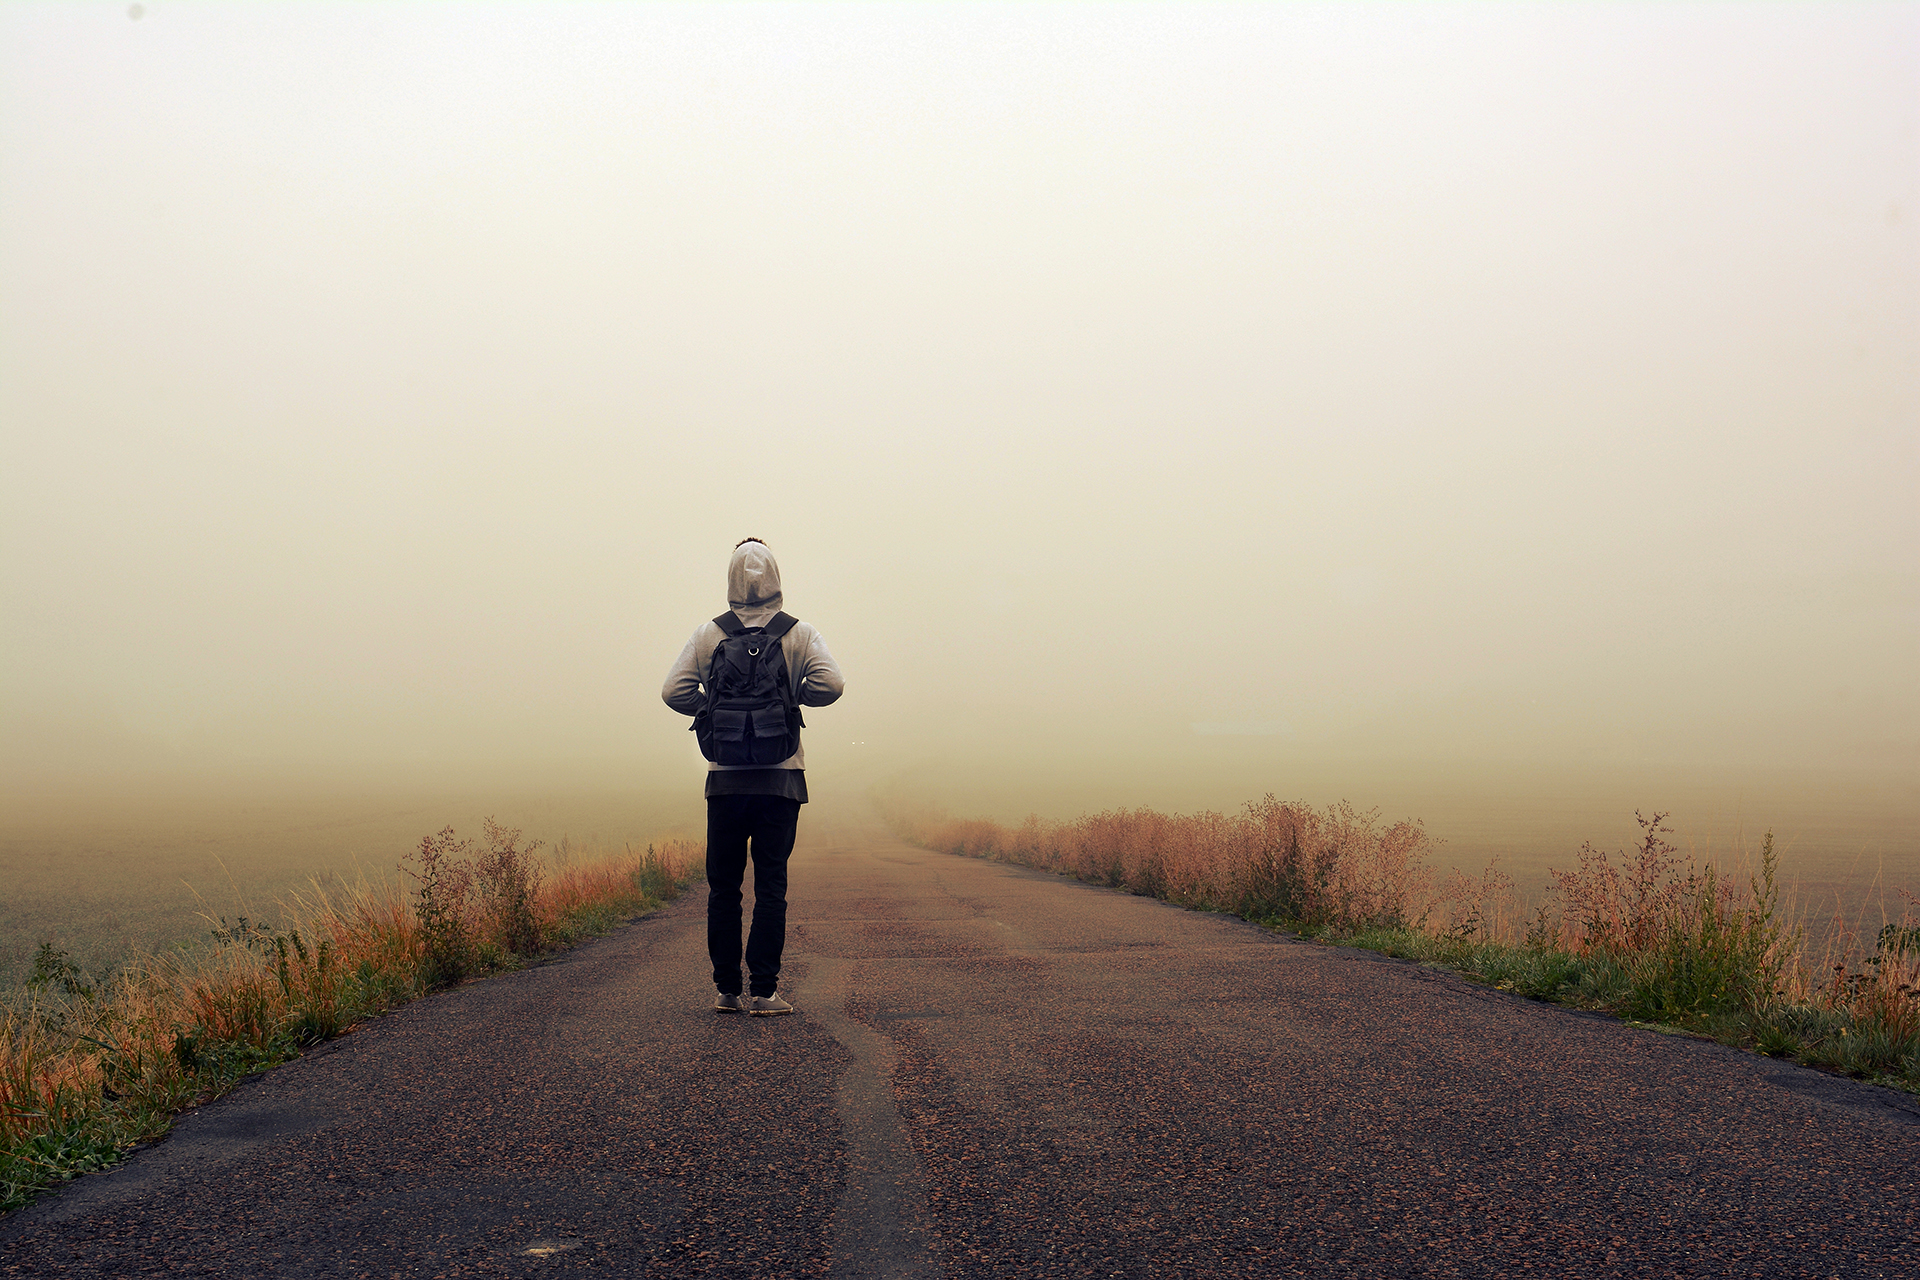 Someone stood on isolated lane facing away from the camera looking at the road